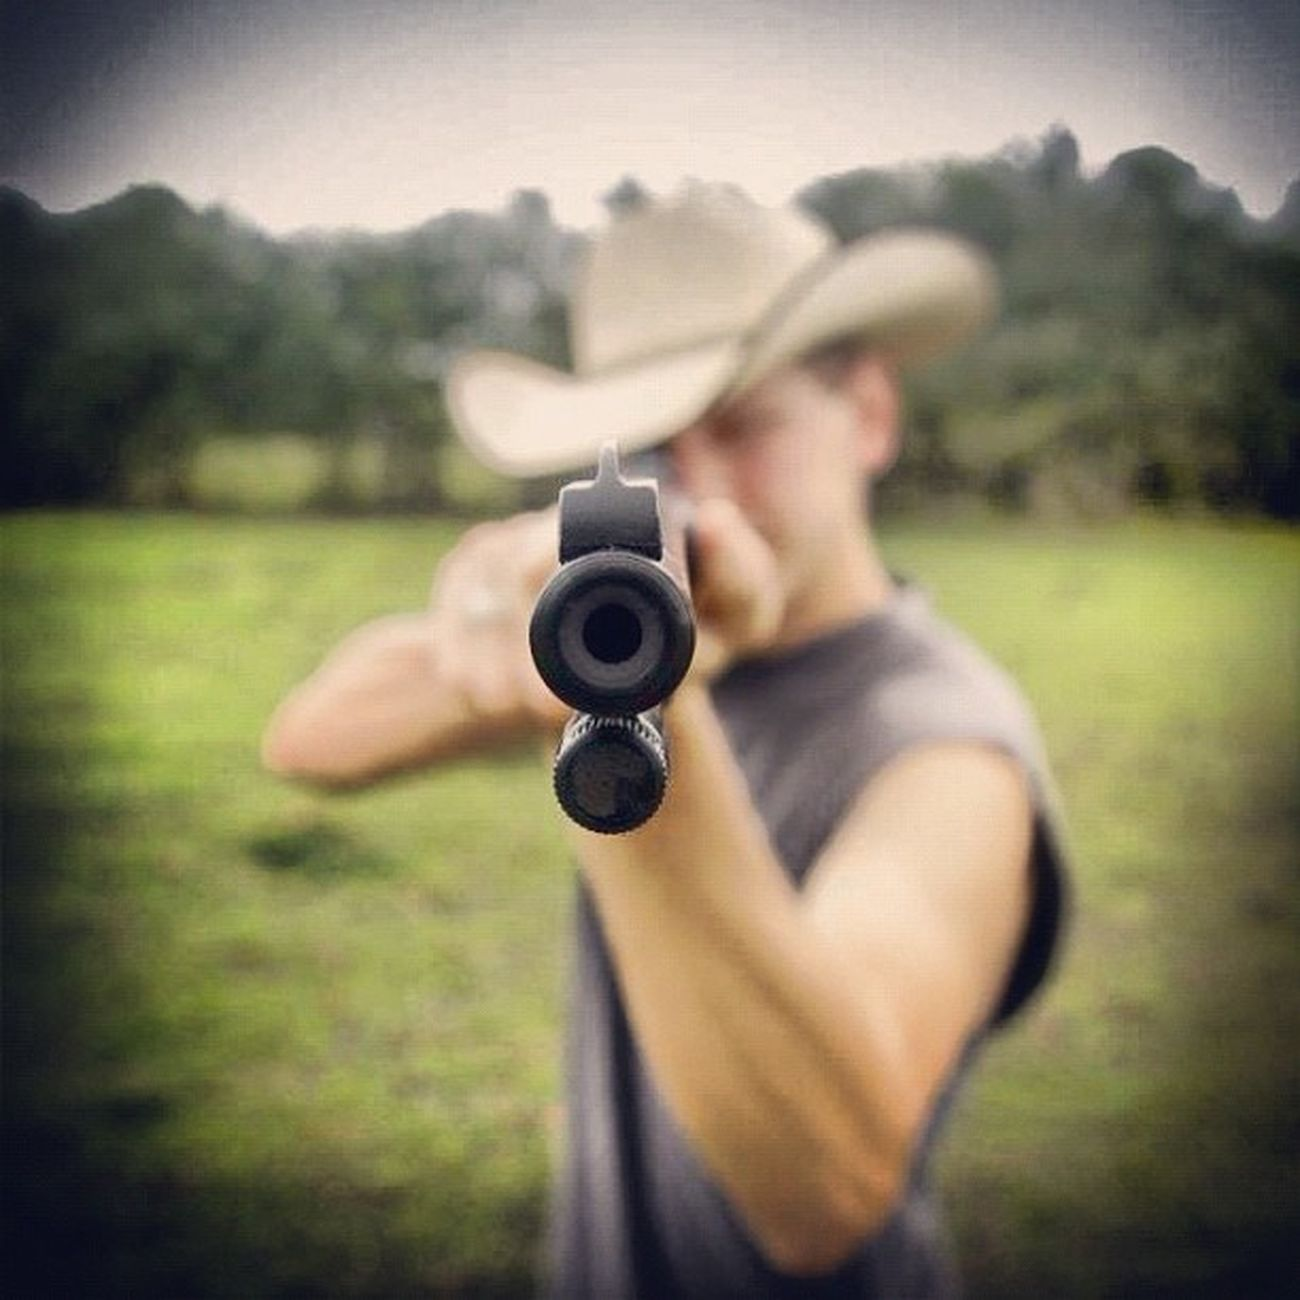 Smile, and wait for the flash! (shot with care) #igers #igerstexas #gun #aim #rifle #.22 #photooftheday #gcs #picoftheday #earlybird #_wg #jj_forum #jj #the_guild #primeshots #cowboy #hat #atyou Cowboy Jj_forum_0438 Photooftheday Aim Picoftheday Gun GCS Earlybird Igers Rifle Jj  Jj_forum The_guild Primeshots _wg Igerstexas Jj_forum_0370 Hat Atyou